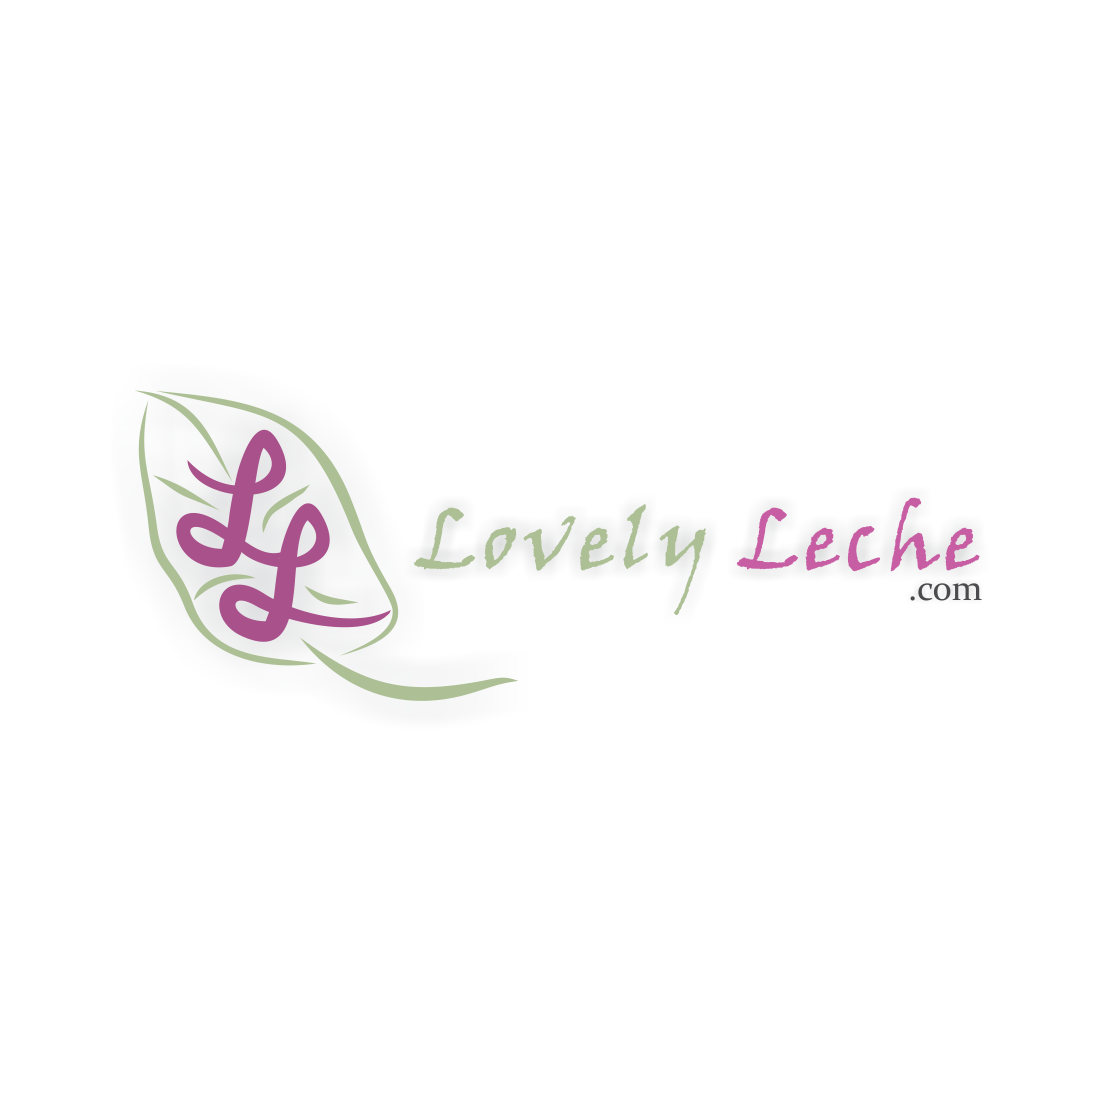 Logo Design by robbiemack - Entry No. 31 in the Logo Design Contest Lovely Leche.com.